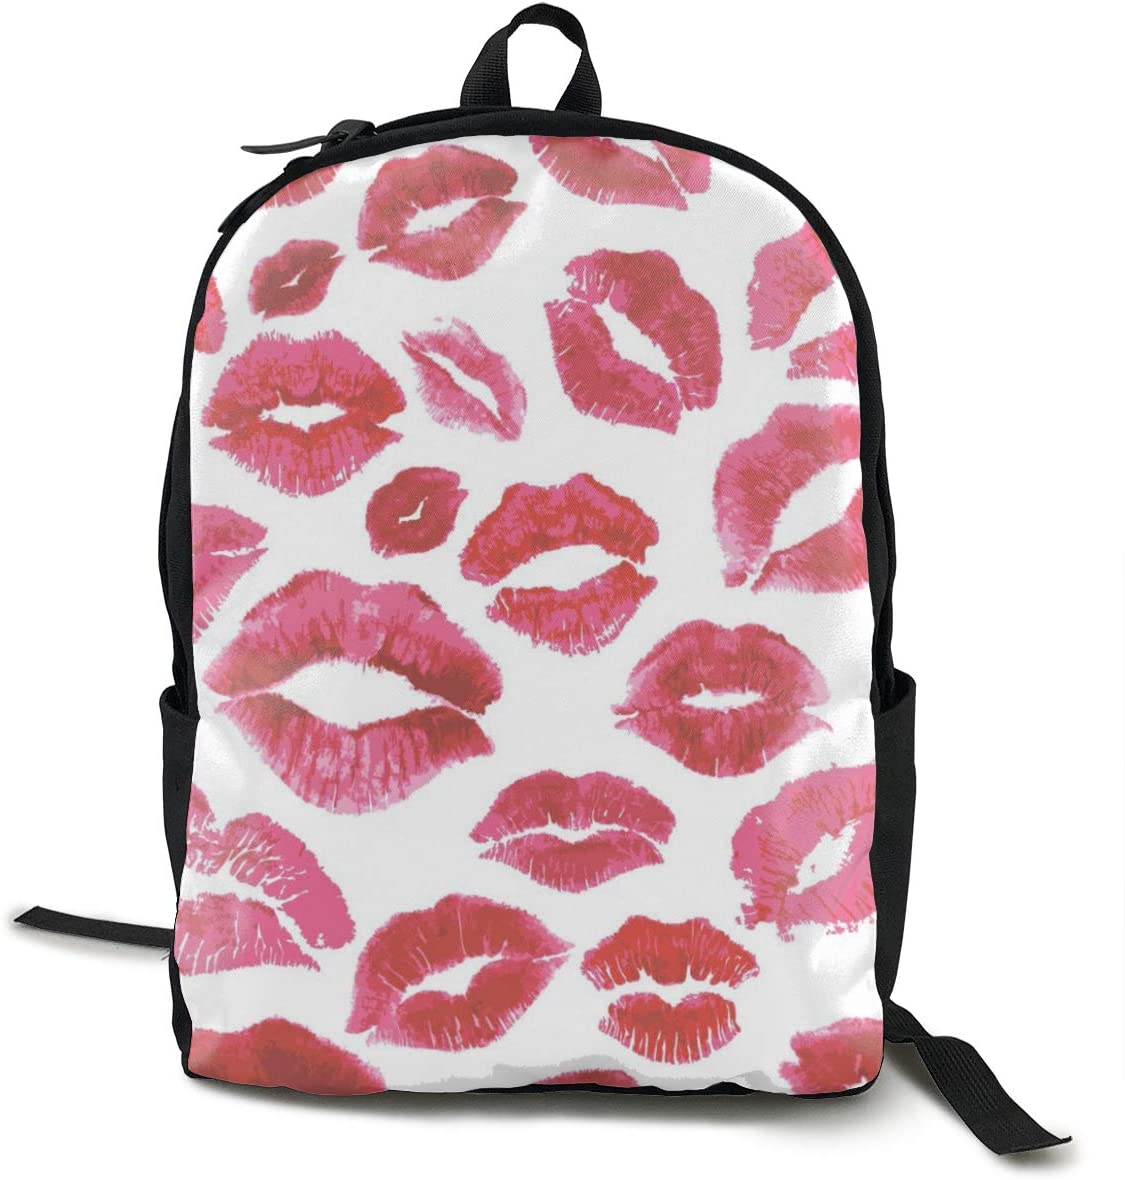 NiYoung Fashion Casual Daypack Large Capacity Anti-Theft Multipurpose Laptop Backpack Travel Business Backpack School College Students Bookbag, Kiss Lips Pattern